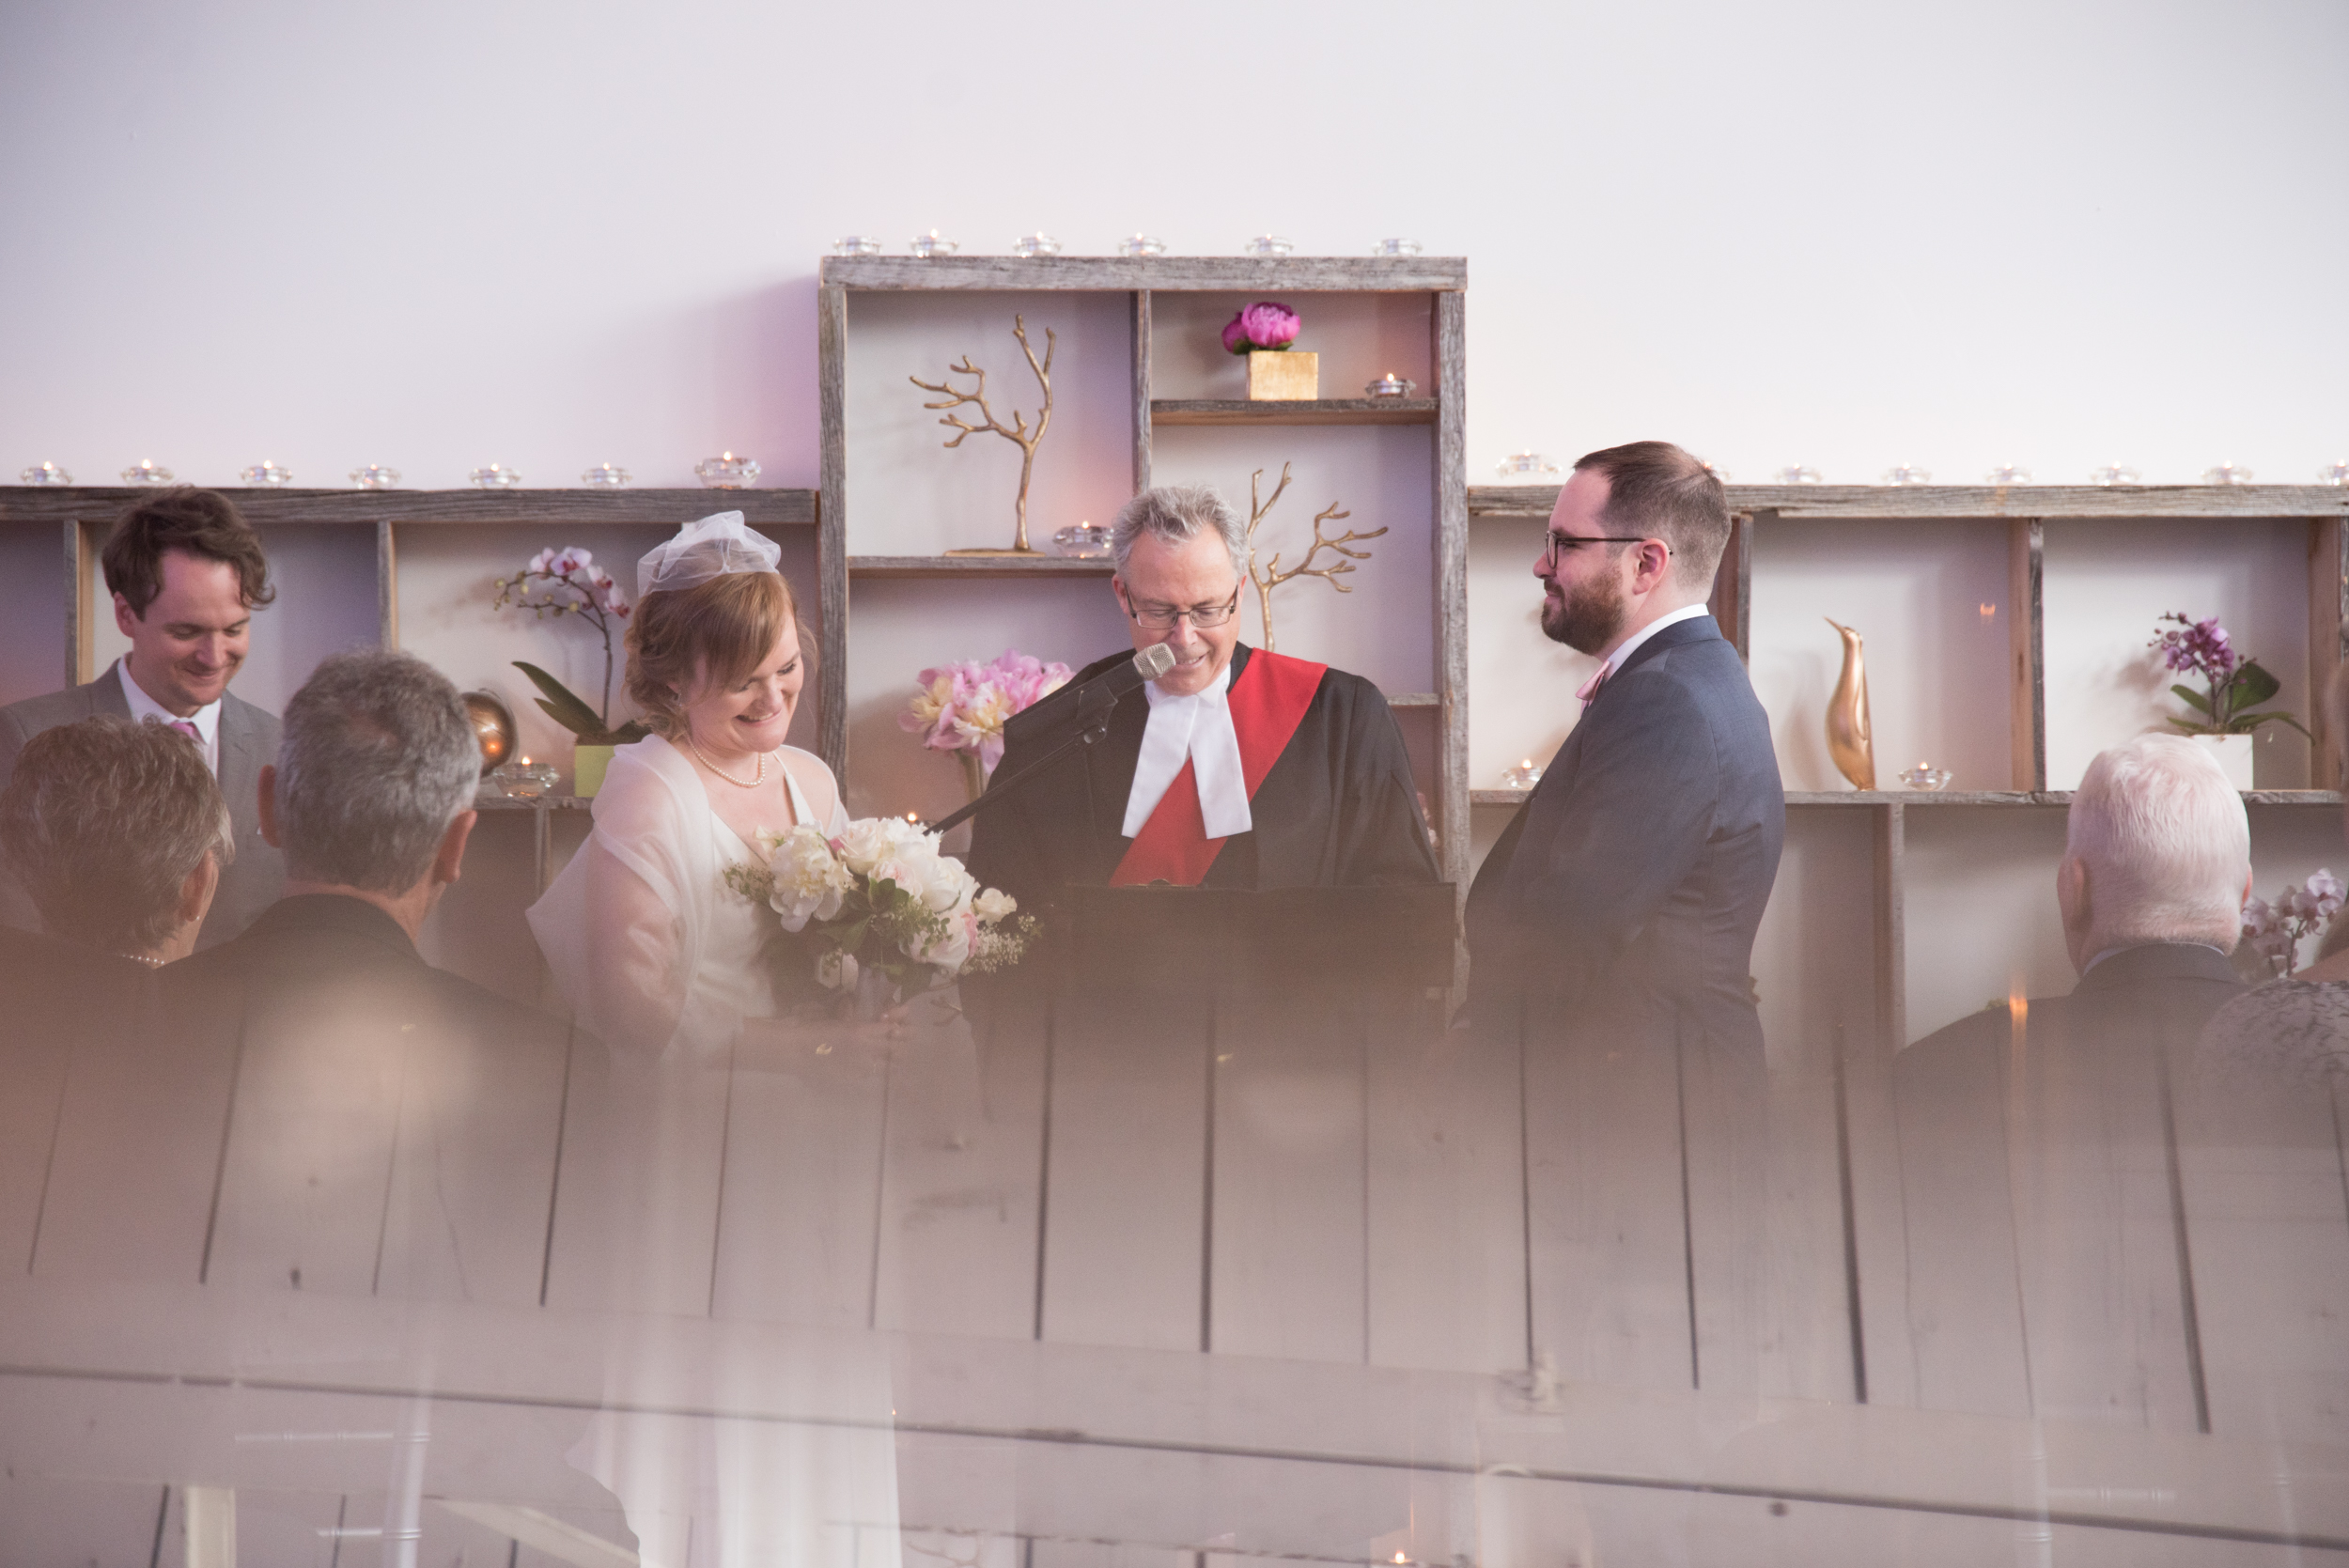 Toronto Wedding Ceremony at Airship 37 with Soundslikeyellowphotography